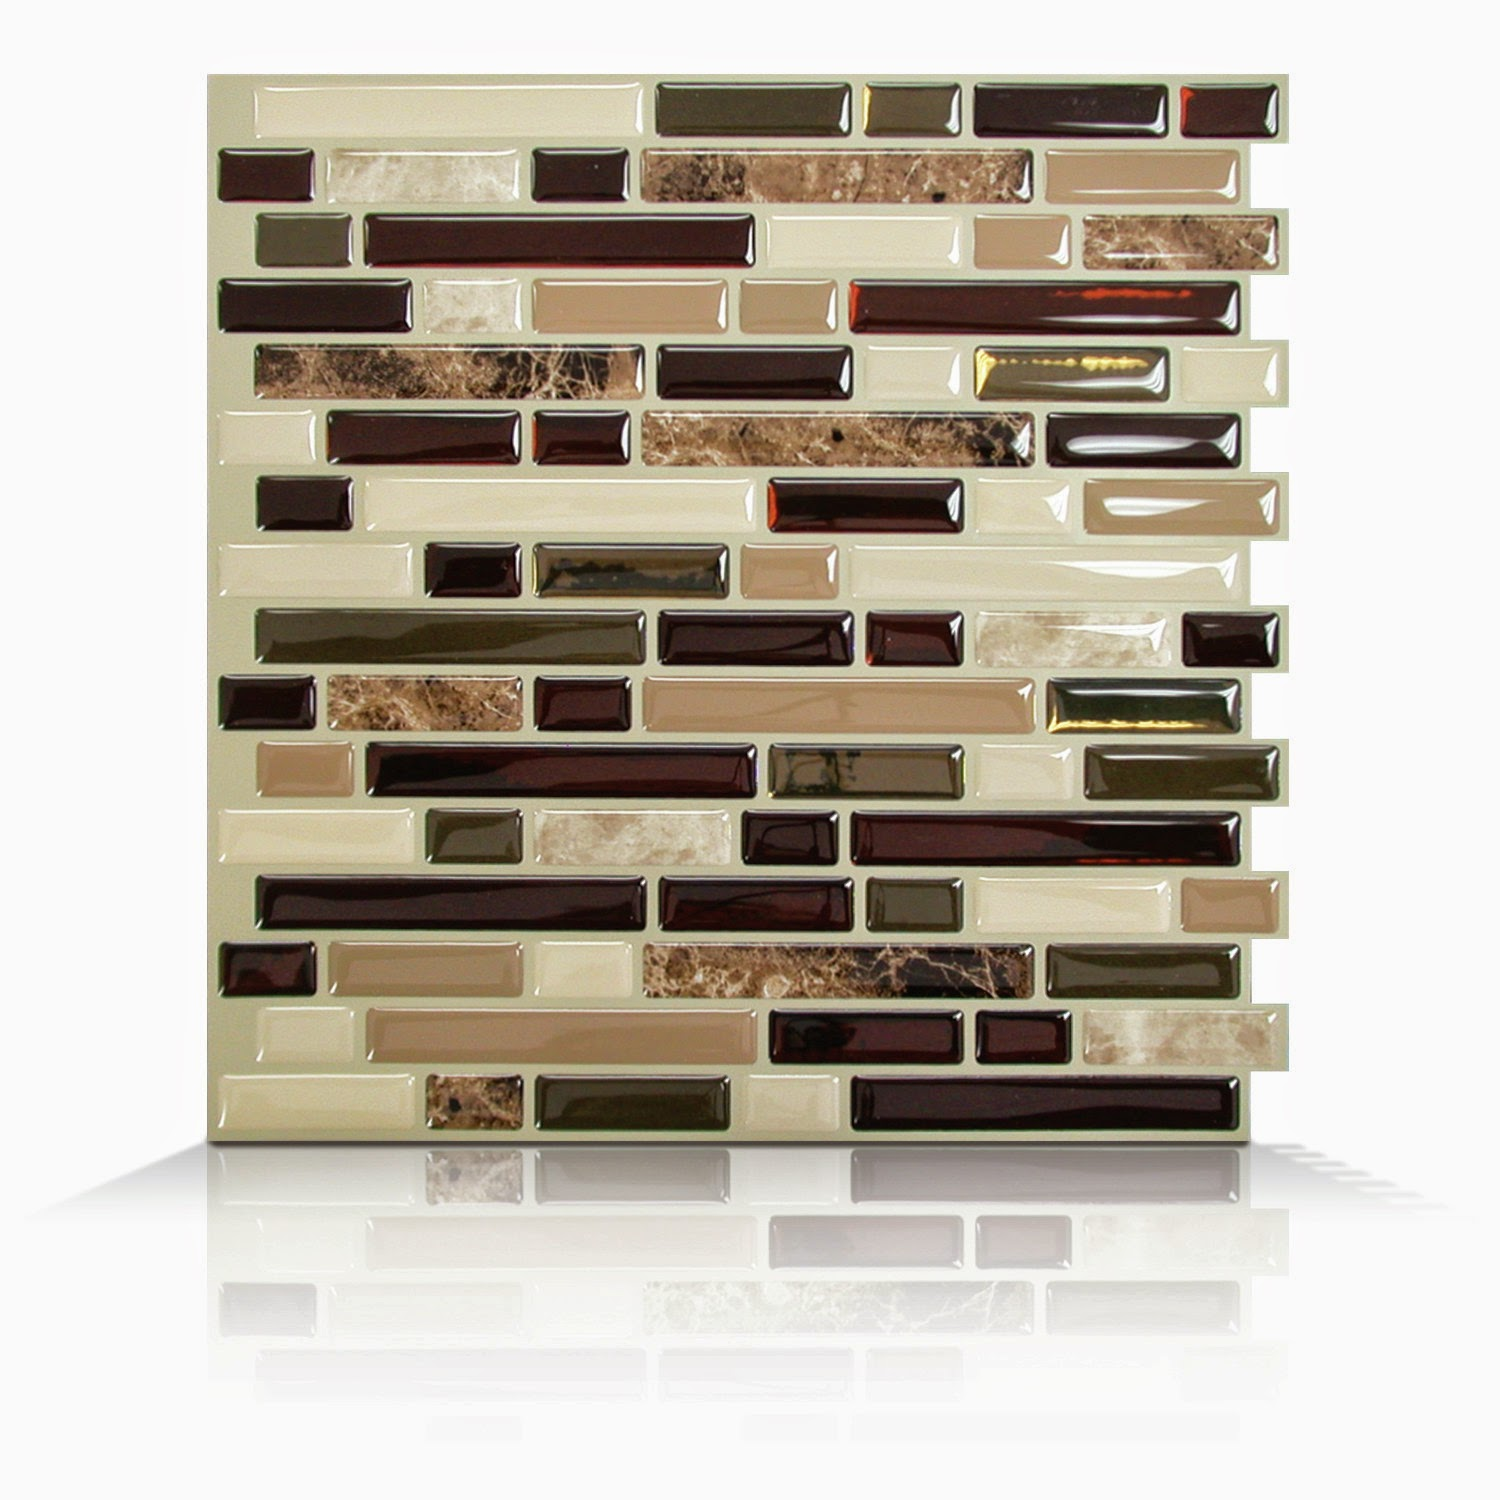 Self Adhesive Backsplashes Pictures Ideas From Hgtv: Decor Musings: The Beauty Of Self-Adhesive Backsplashes